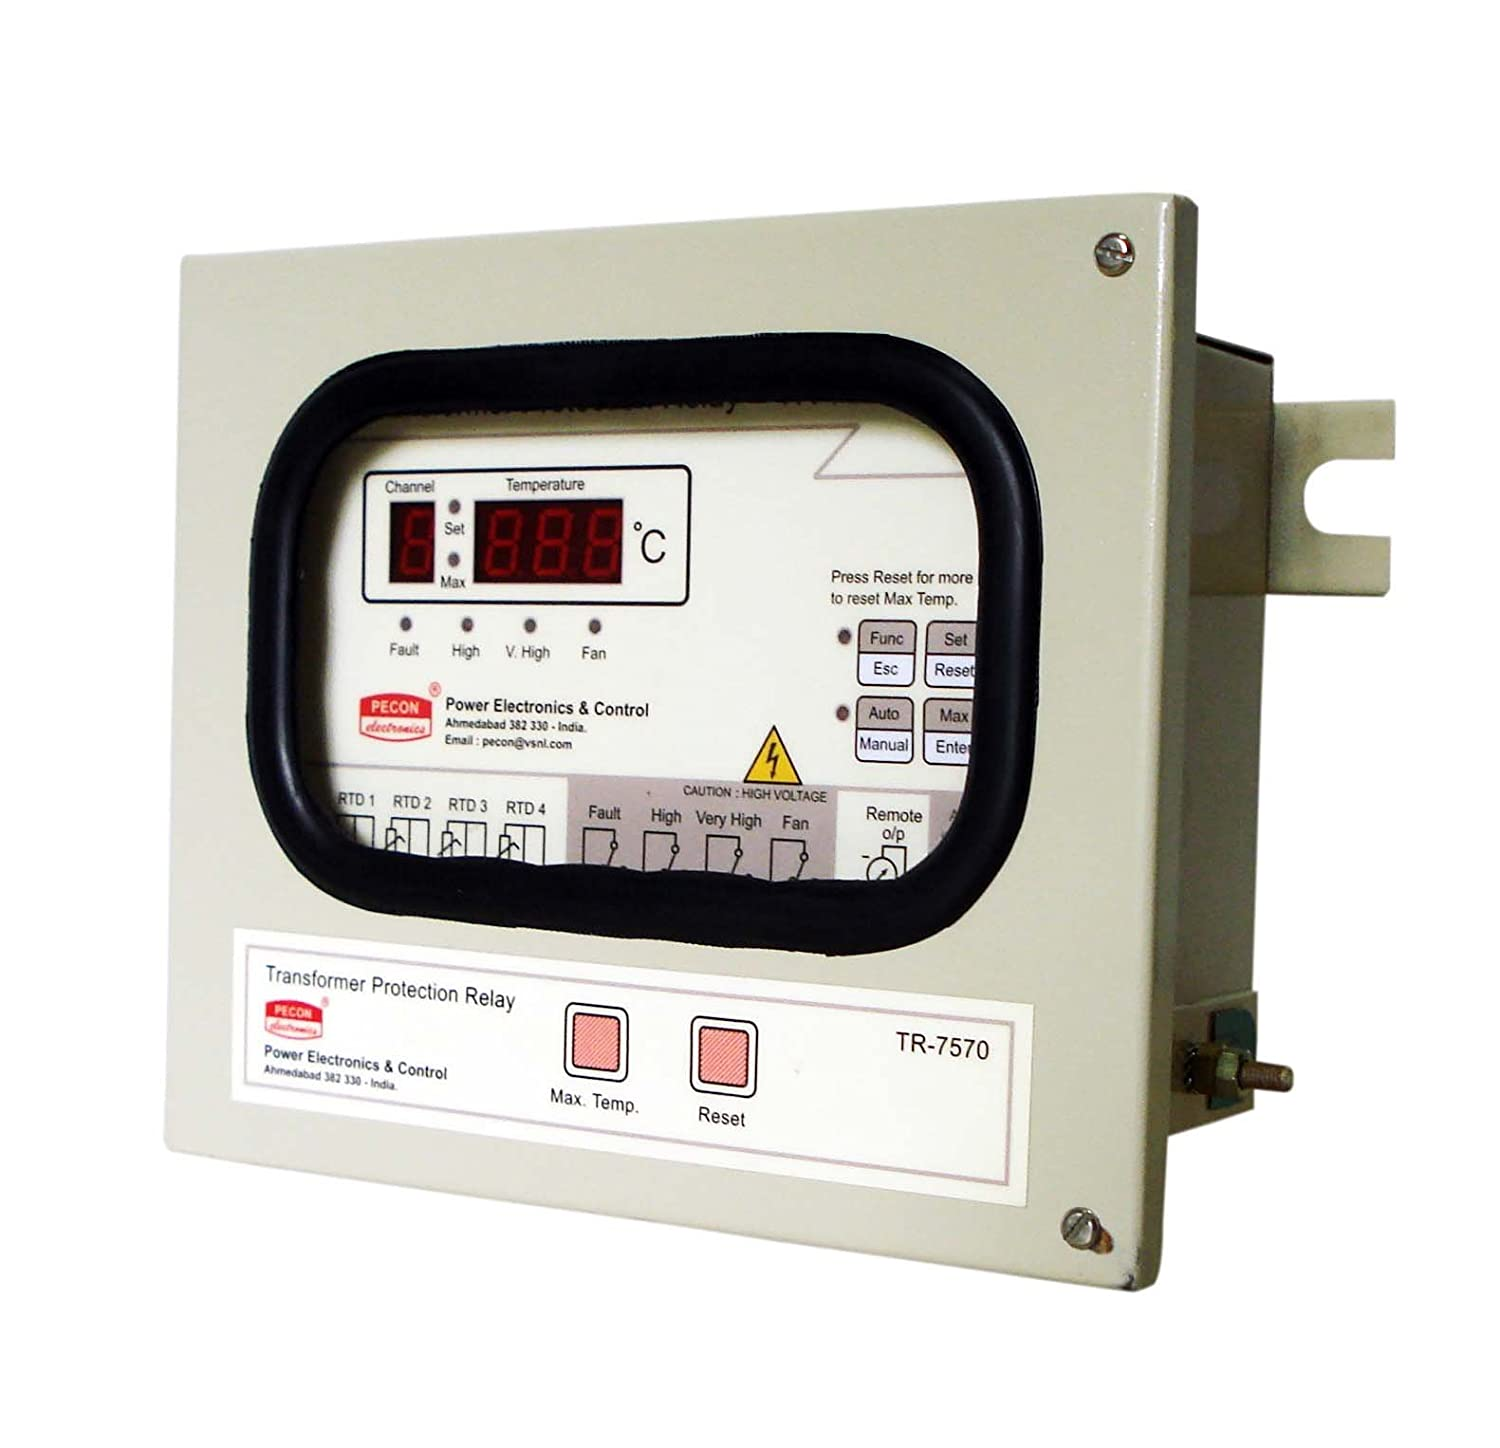 Buy Pecon Make Tr 7570 Transformer Protection Relay Temperature Drytype Testing Open Electrical Scanner Online At Low Prices In India